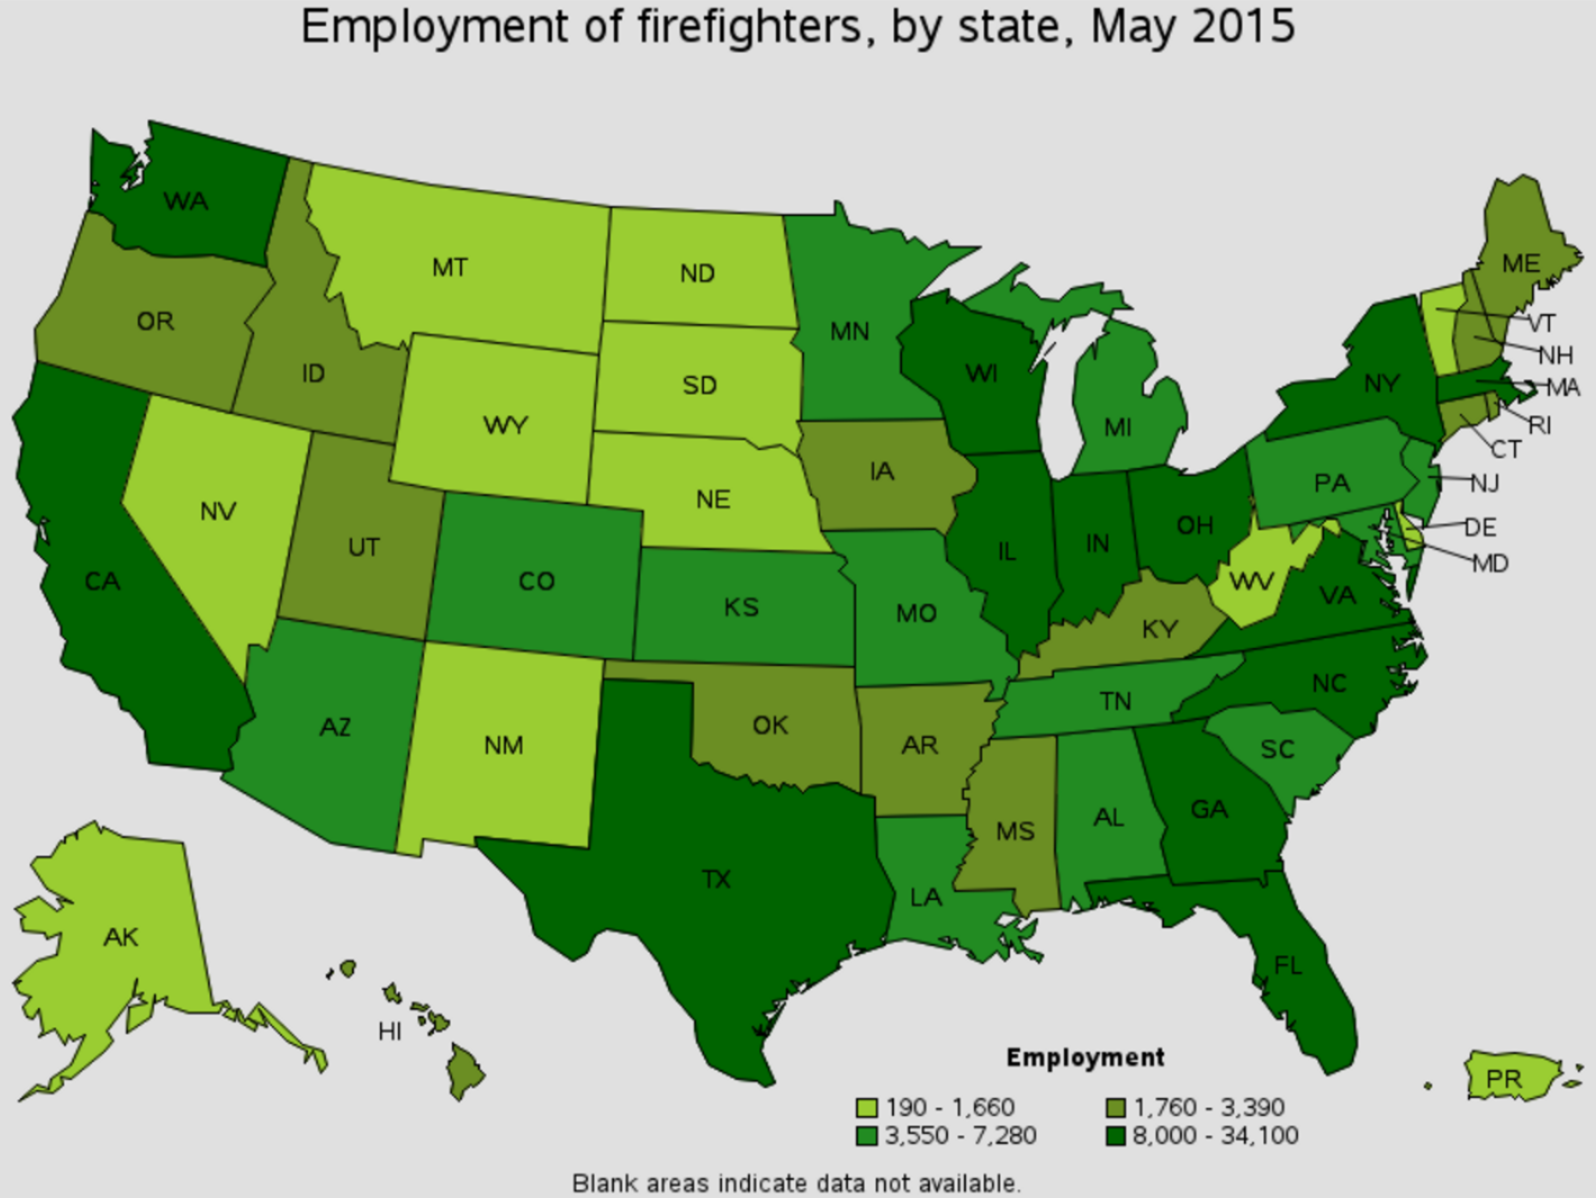 firefighter job outlook by state Syracuse New York